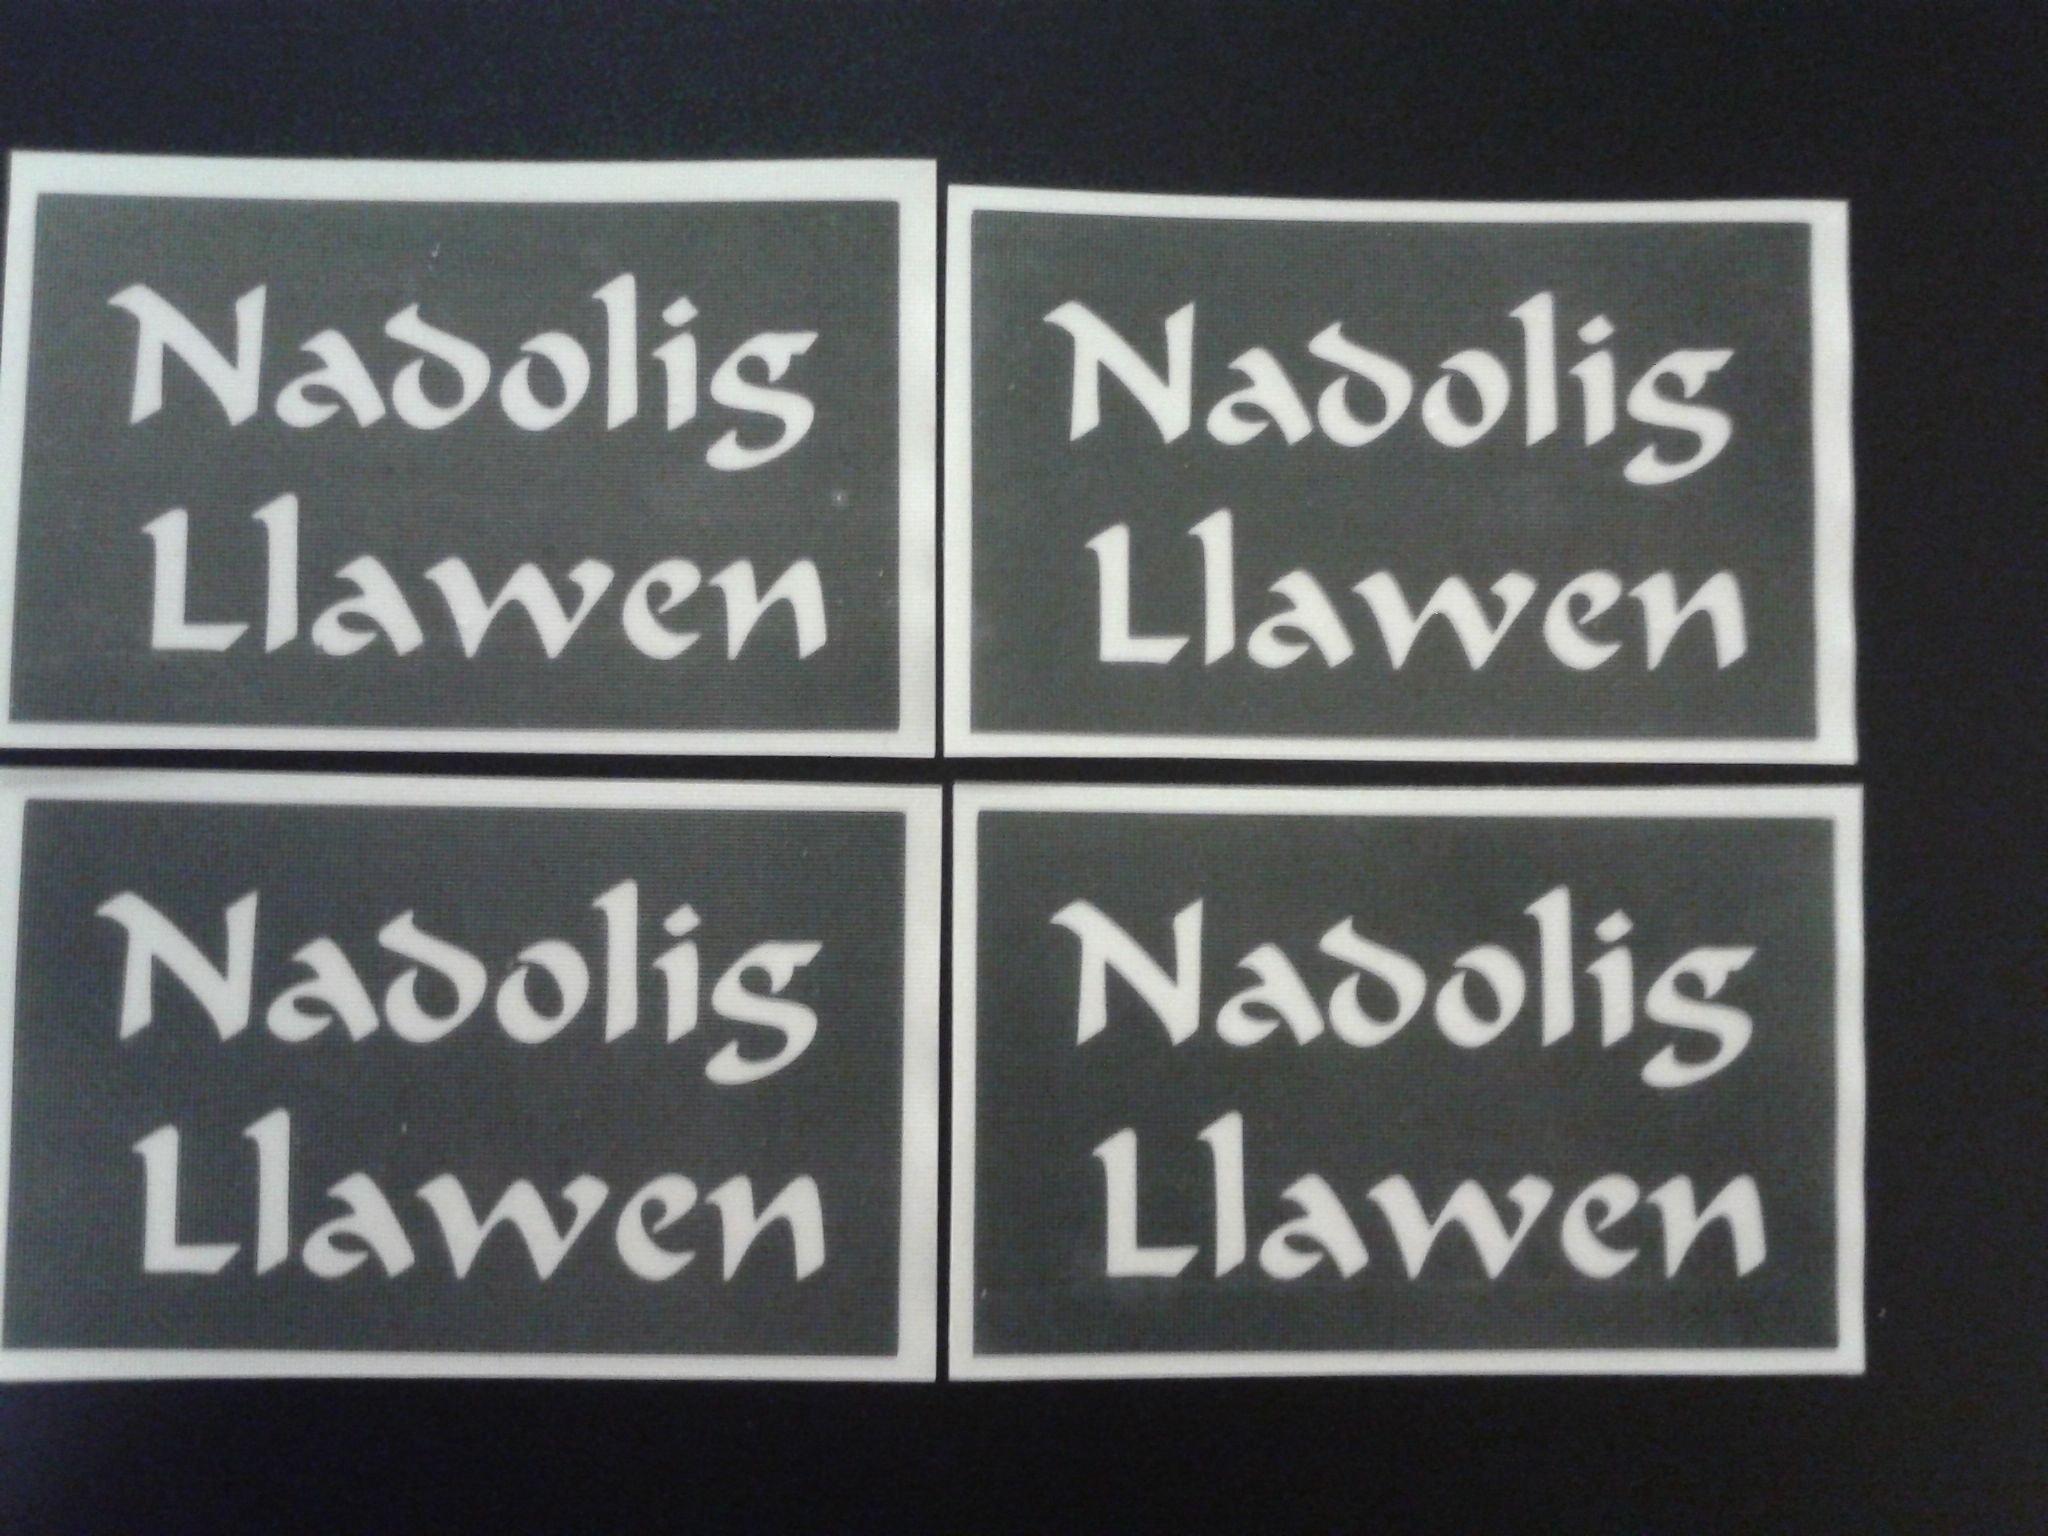 Nadolig Llawen Word Stencils For Etching On Glass Craft Hobby Welsh Happy Christmas Wales